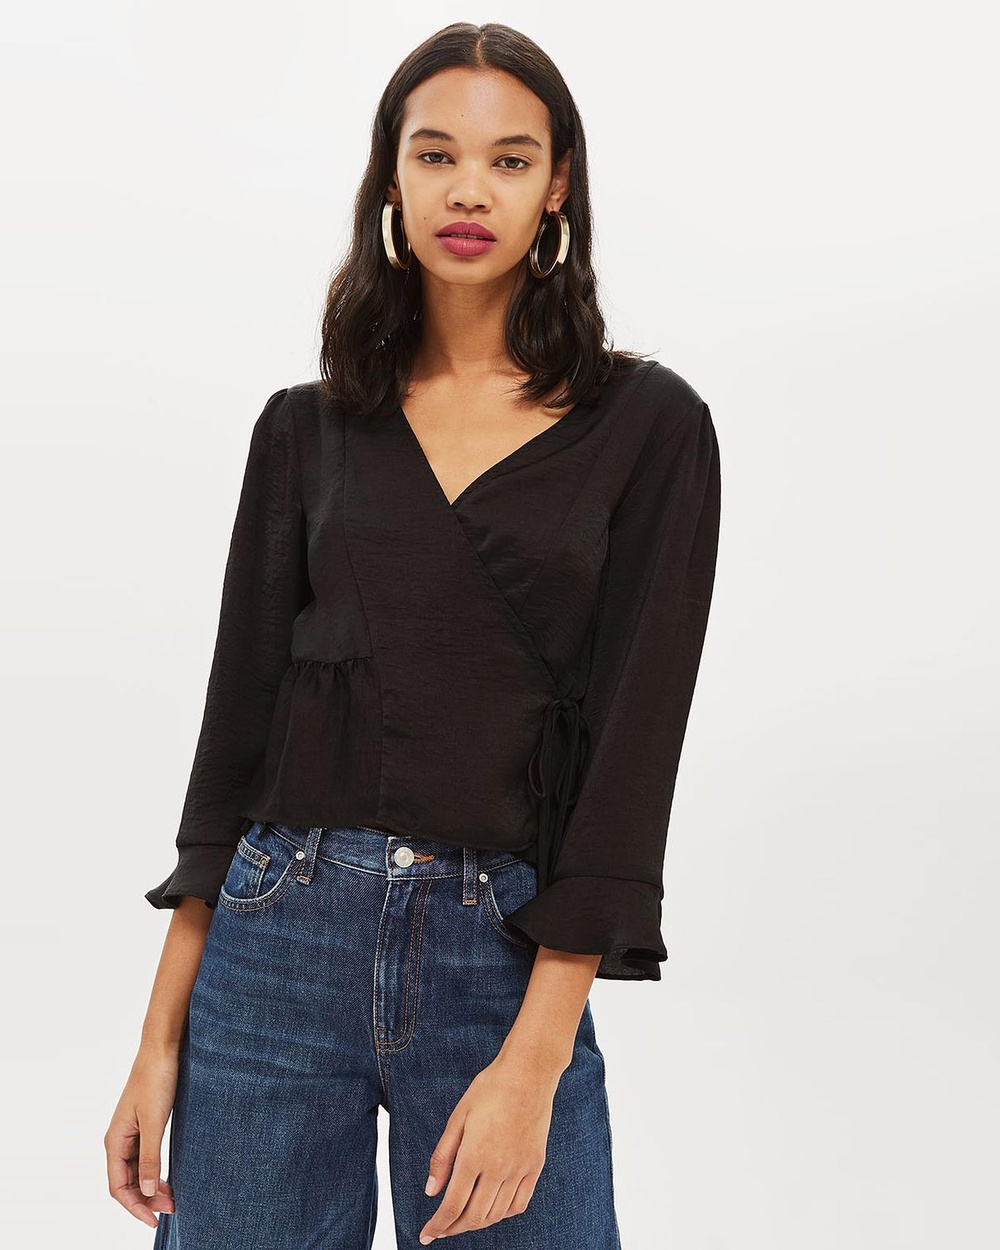 TOPSHOP Frill Wrap Blouse Tops Black Frill Wrap Blouse